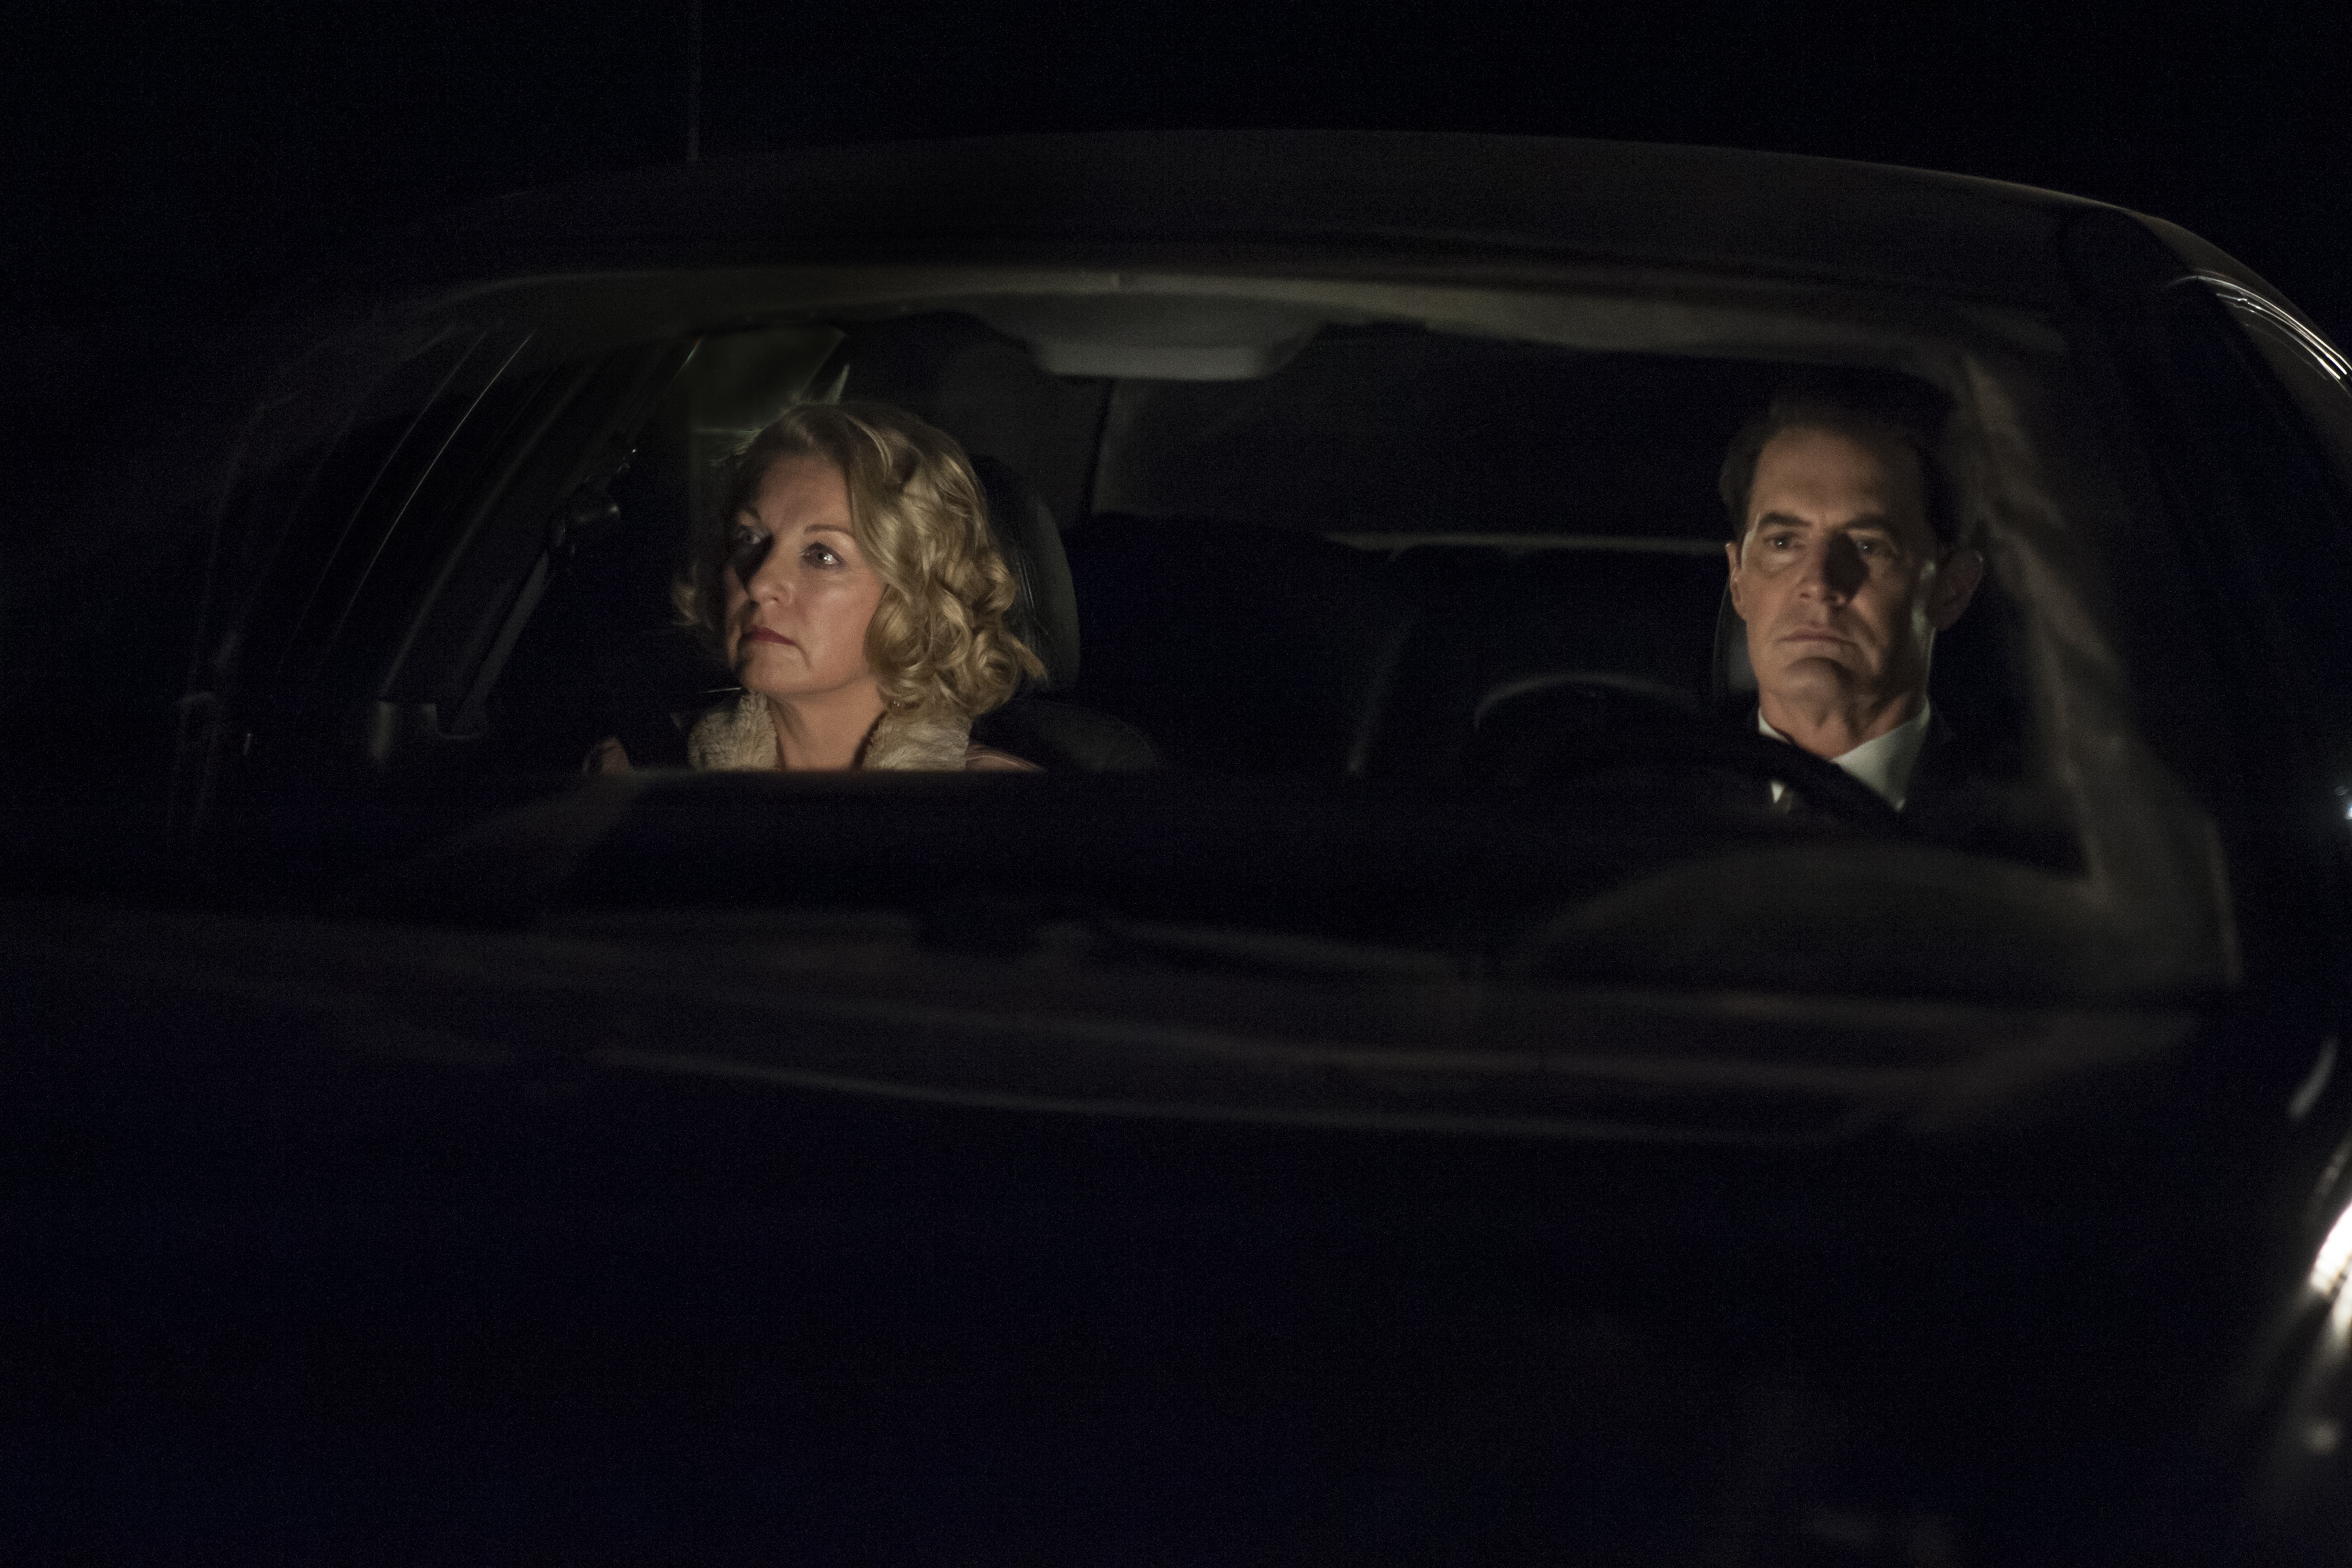 rr 21209 r Recapping Twin Peaks: The Return: Parts 17 and 18